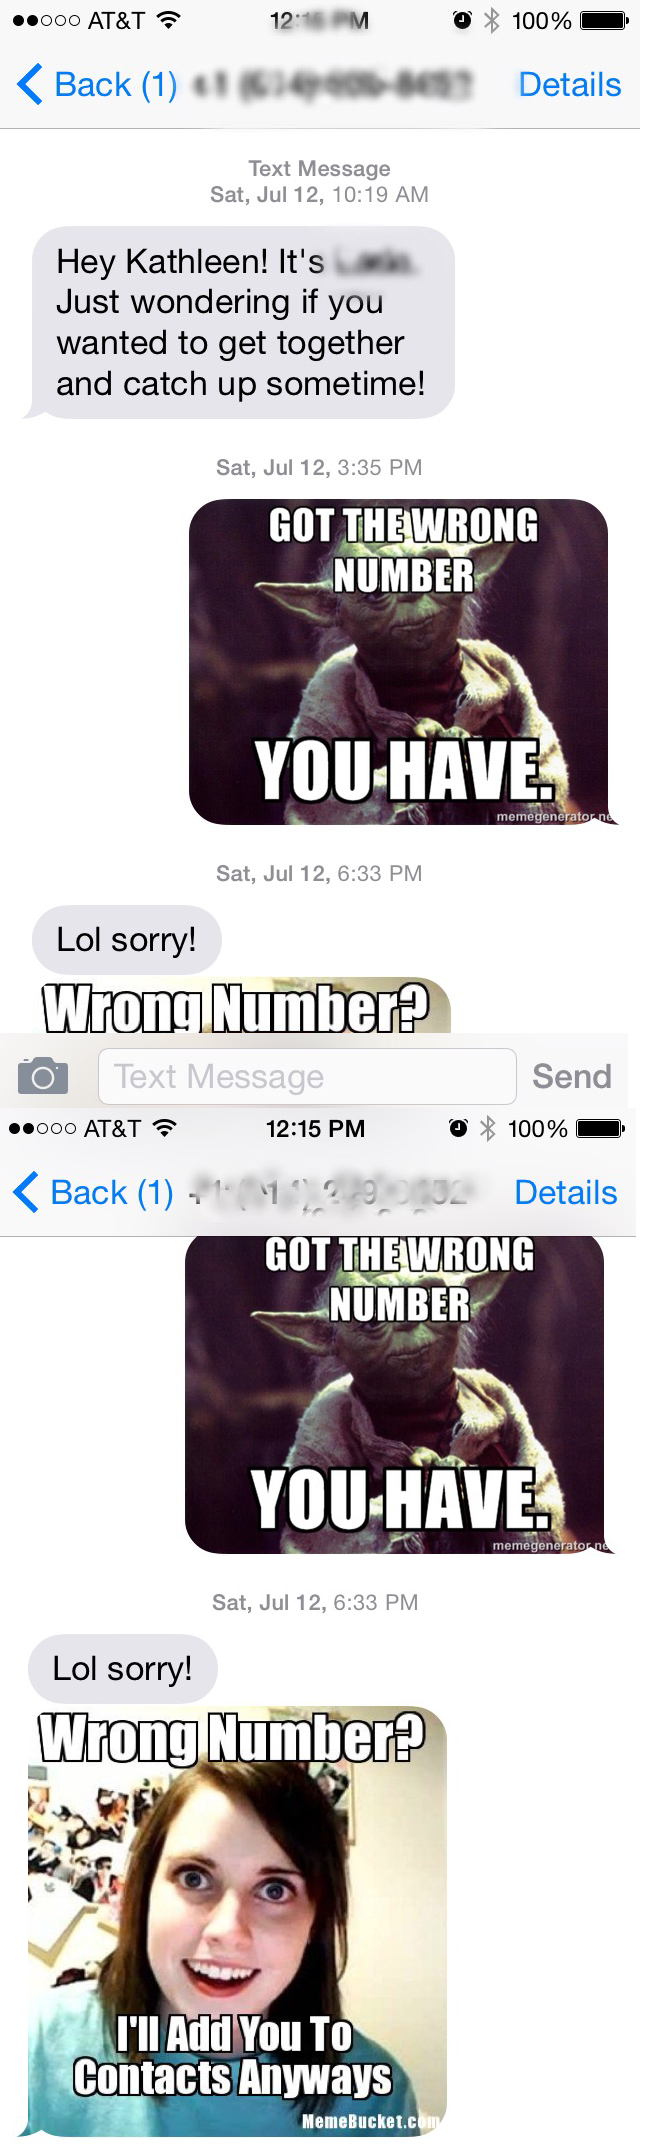 Pics Photos - Funny Wrong Number Text You Know You Want It